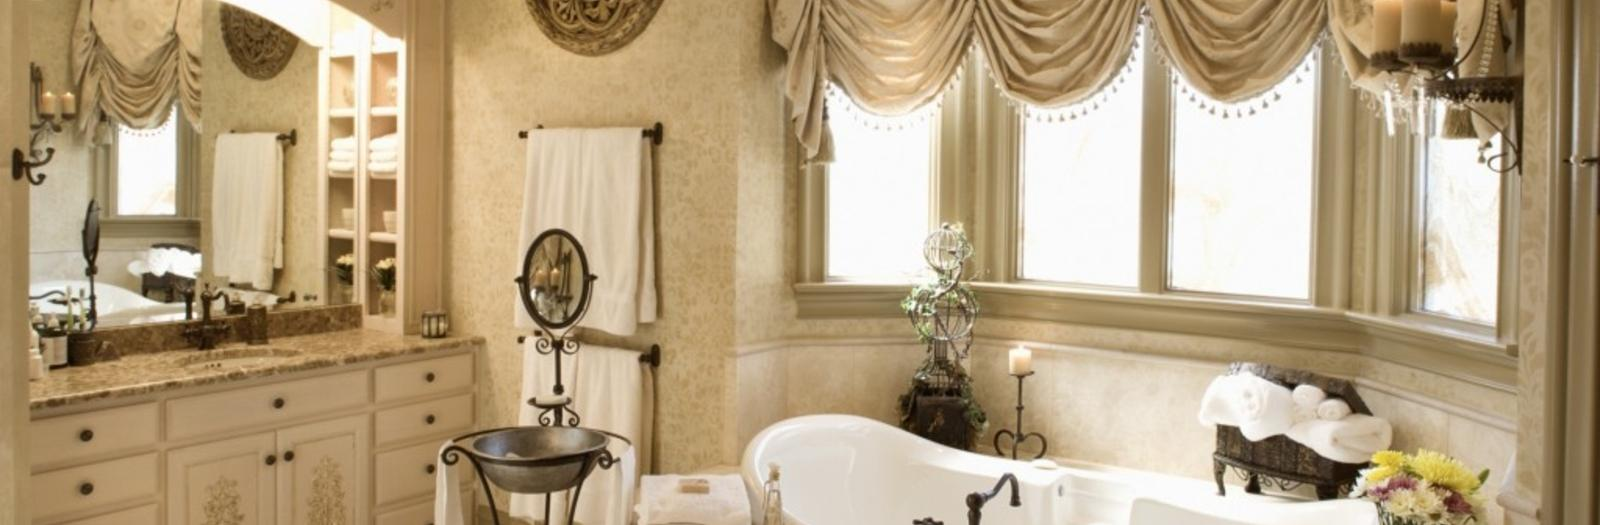 French Country Bathroom with oil rubbed bronze bathtub faucet